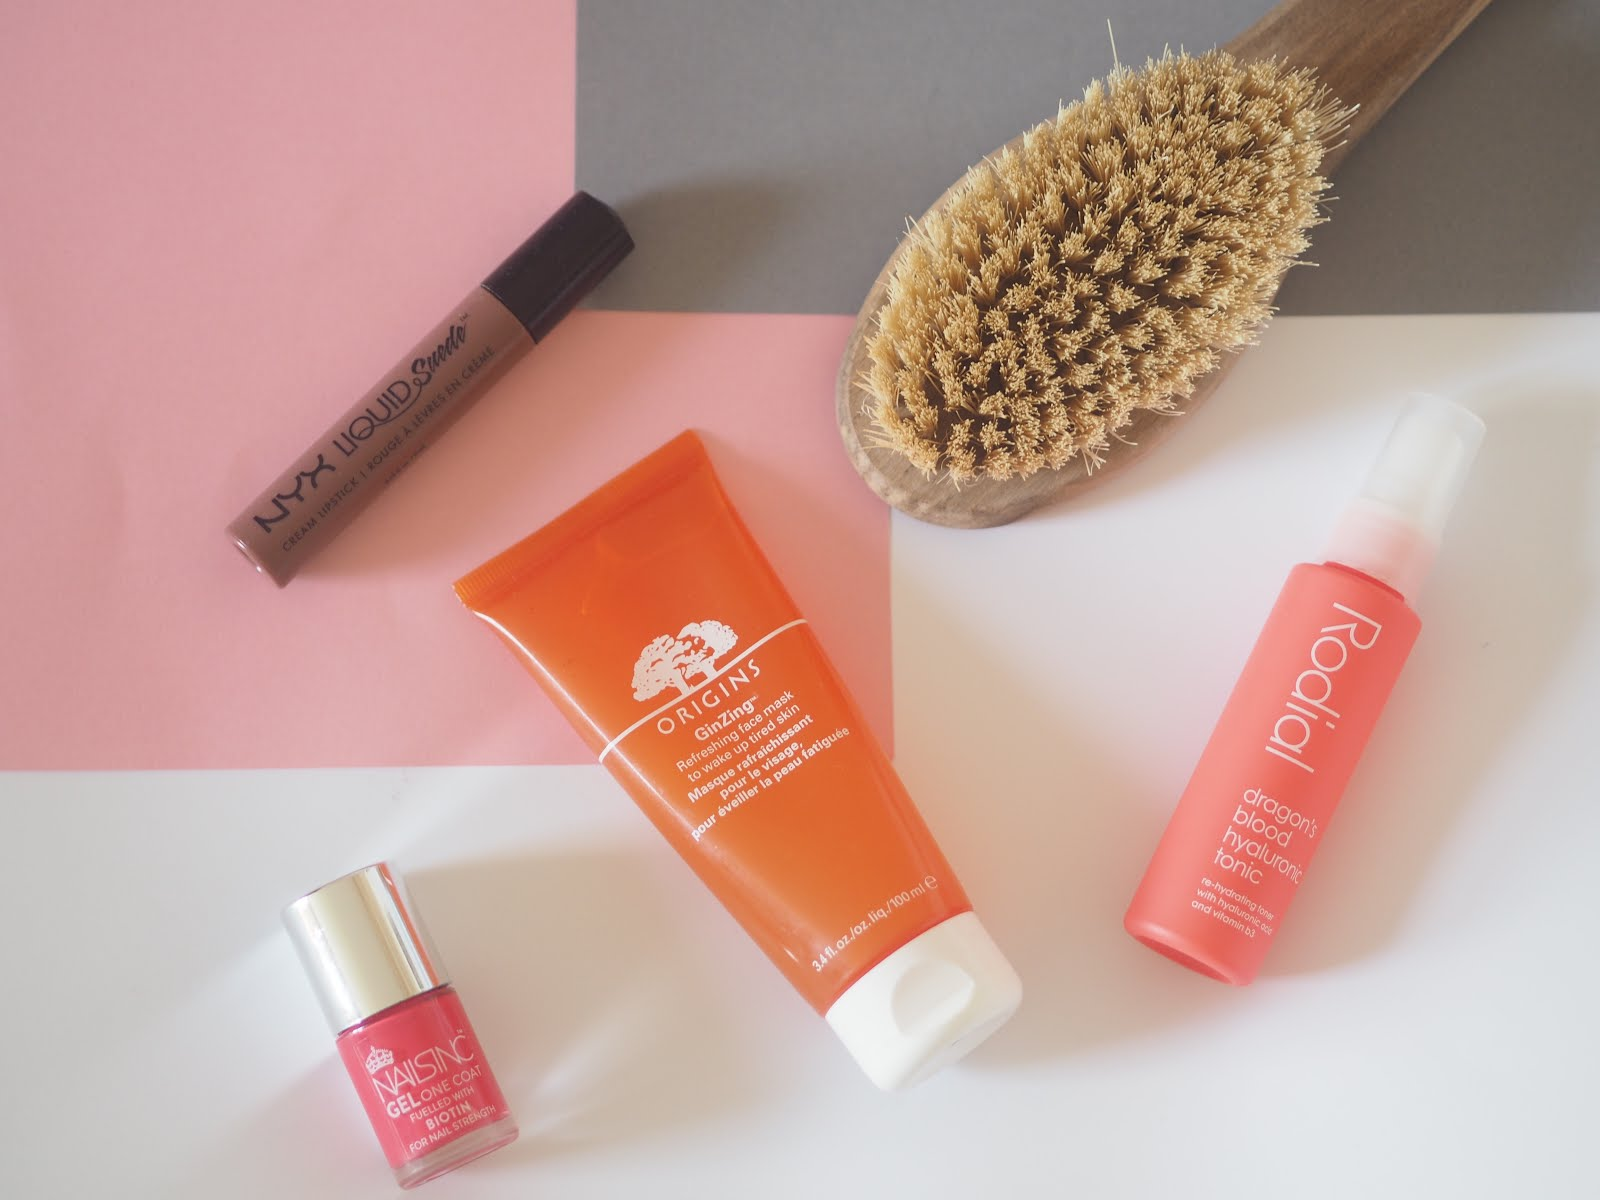 5 Favourite Beauty Products At The Moment